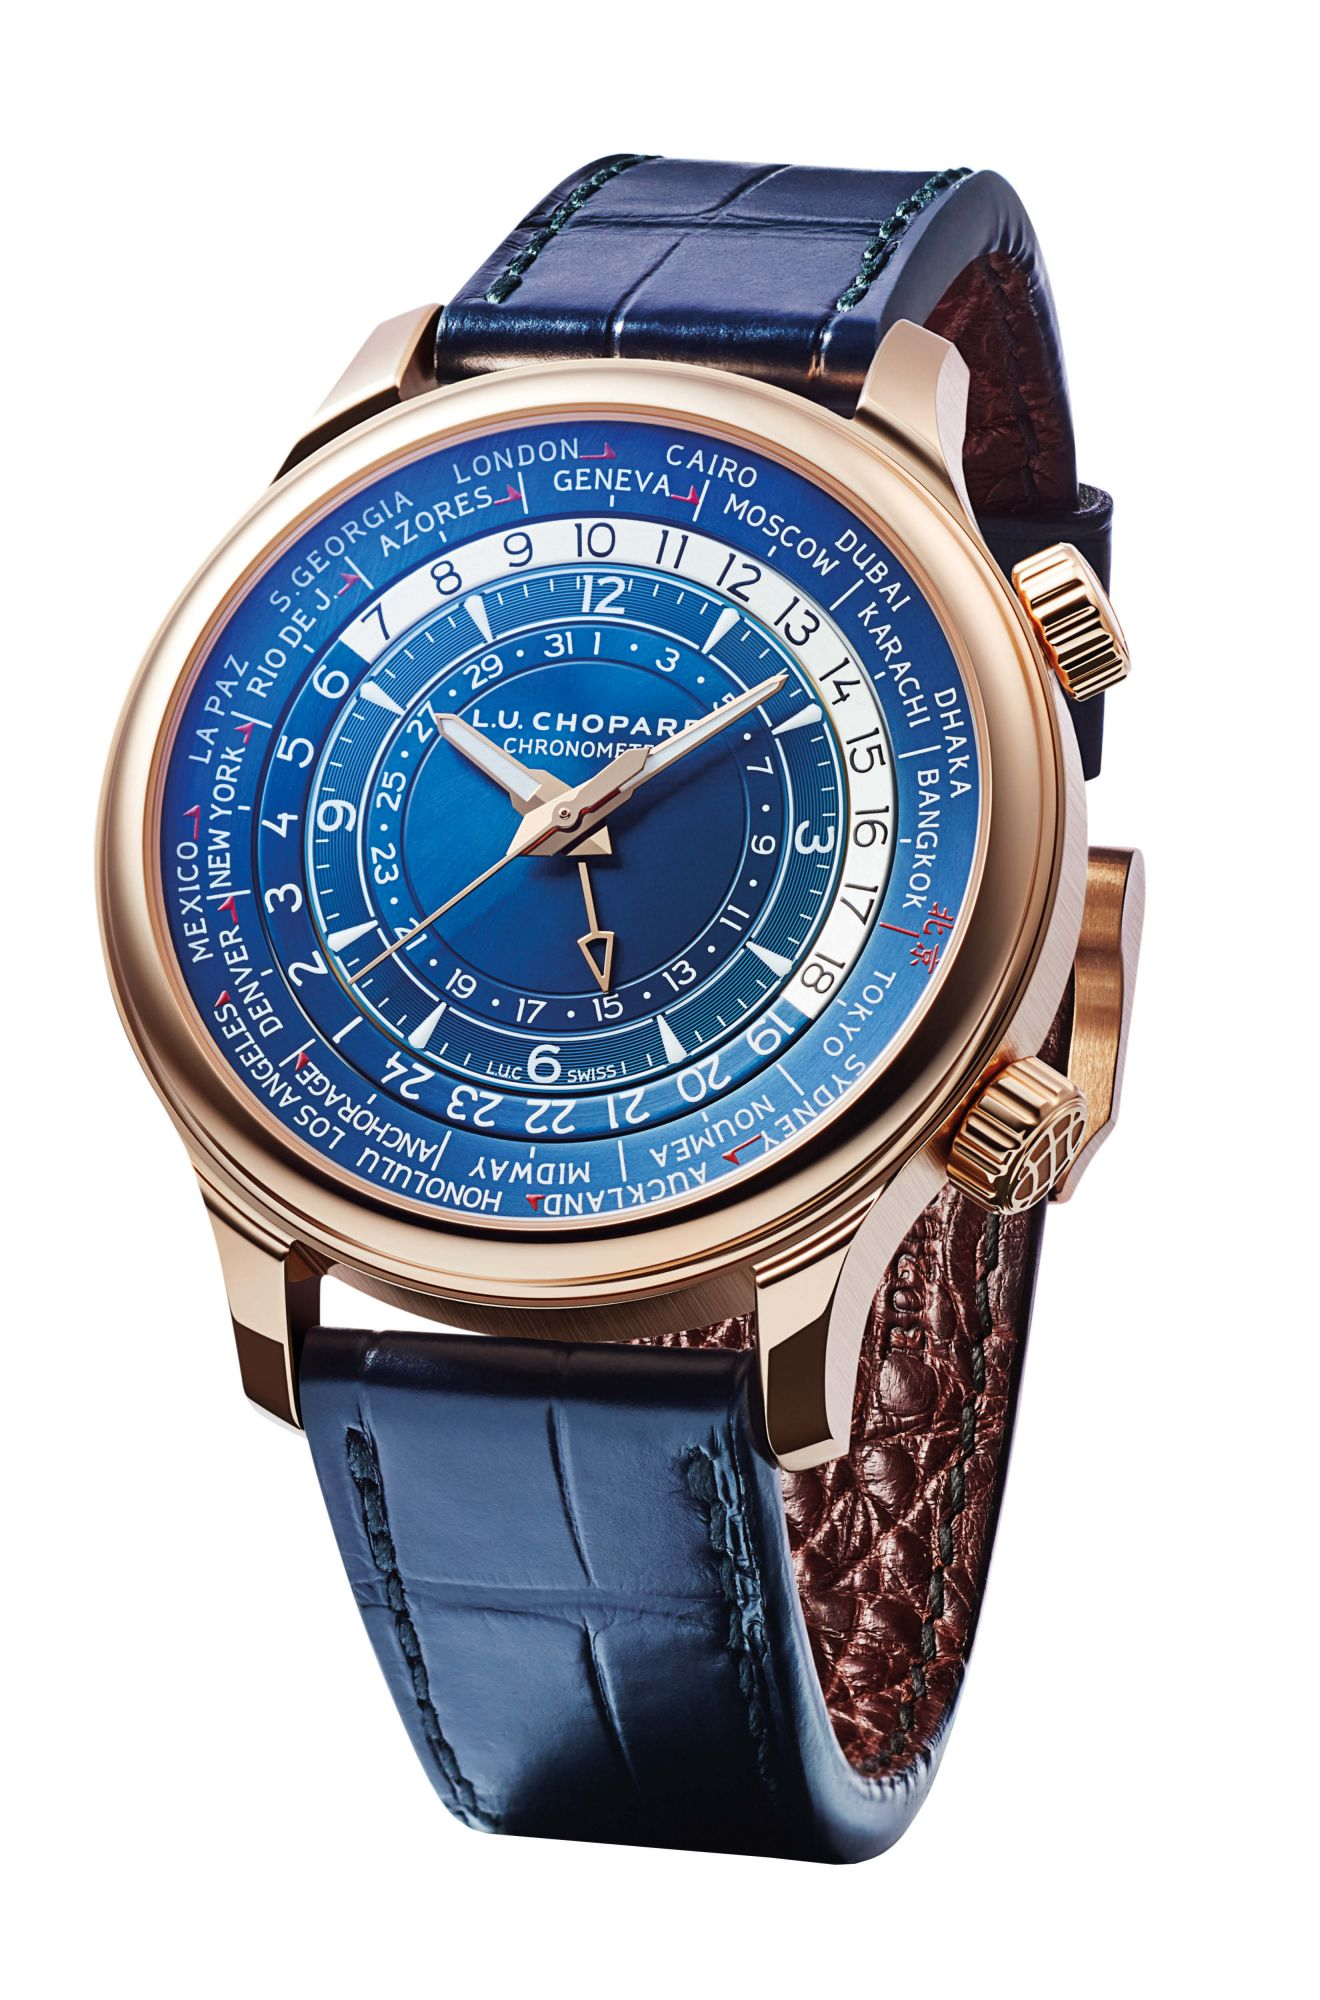 9 Of The Best World-Time Watches